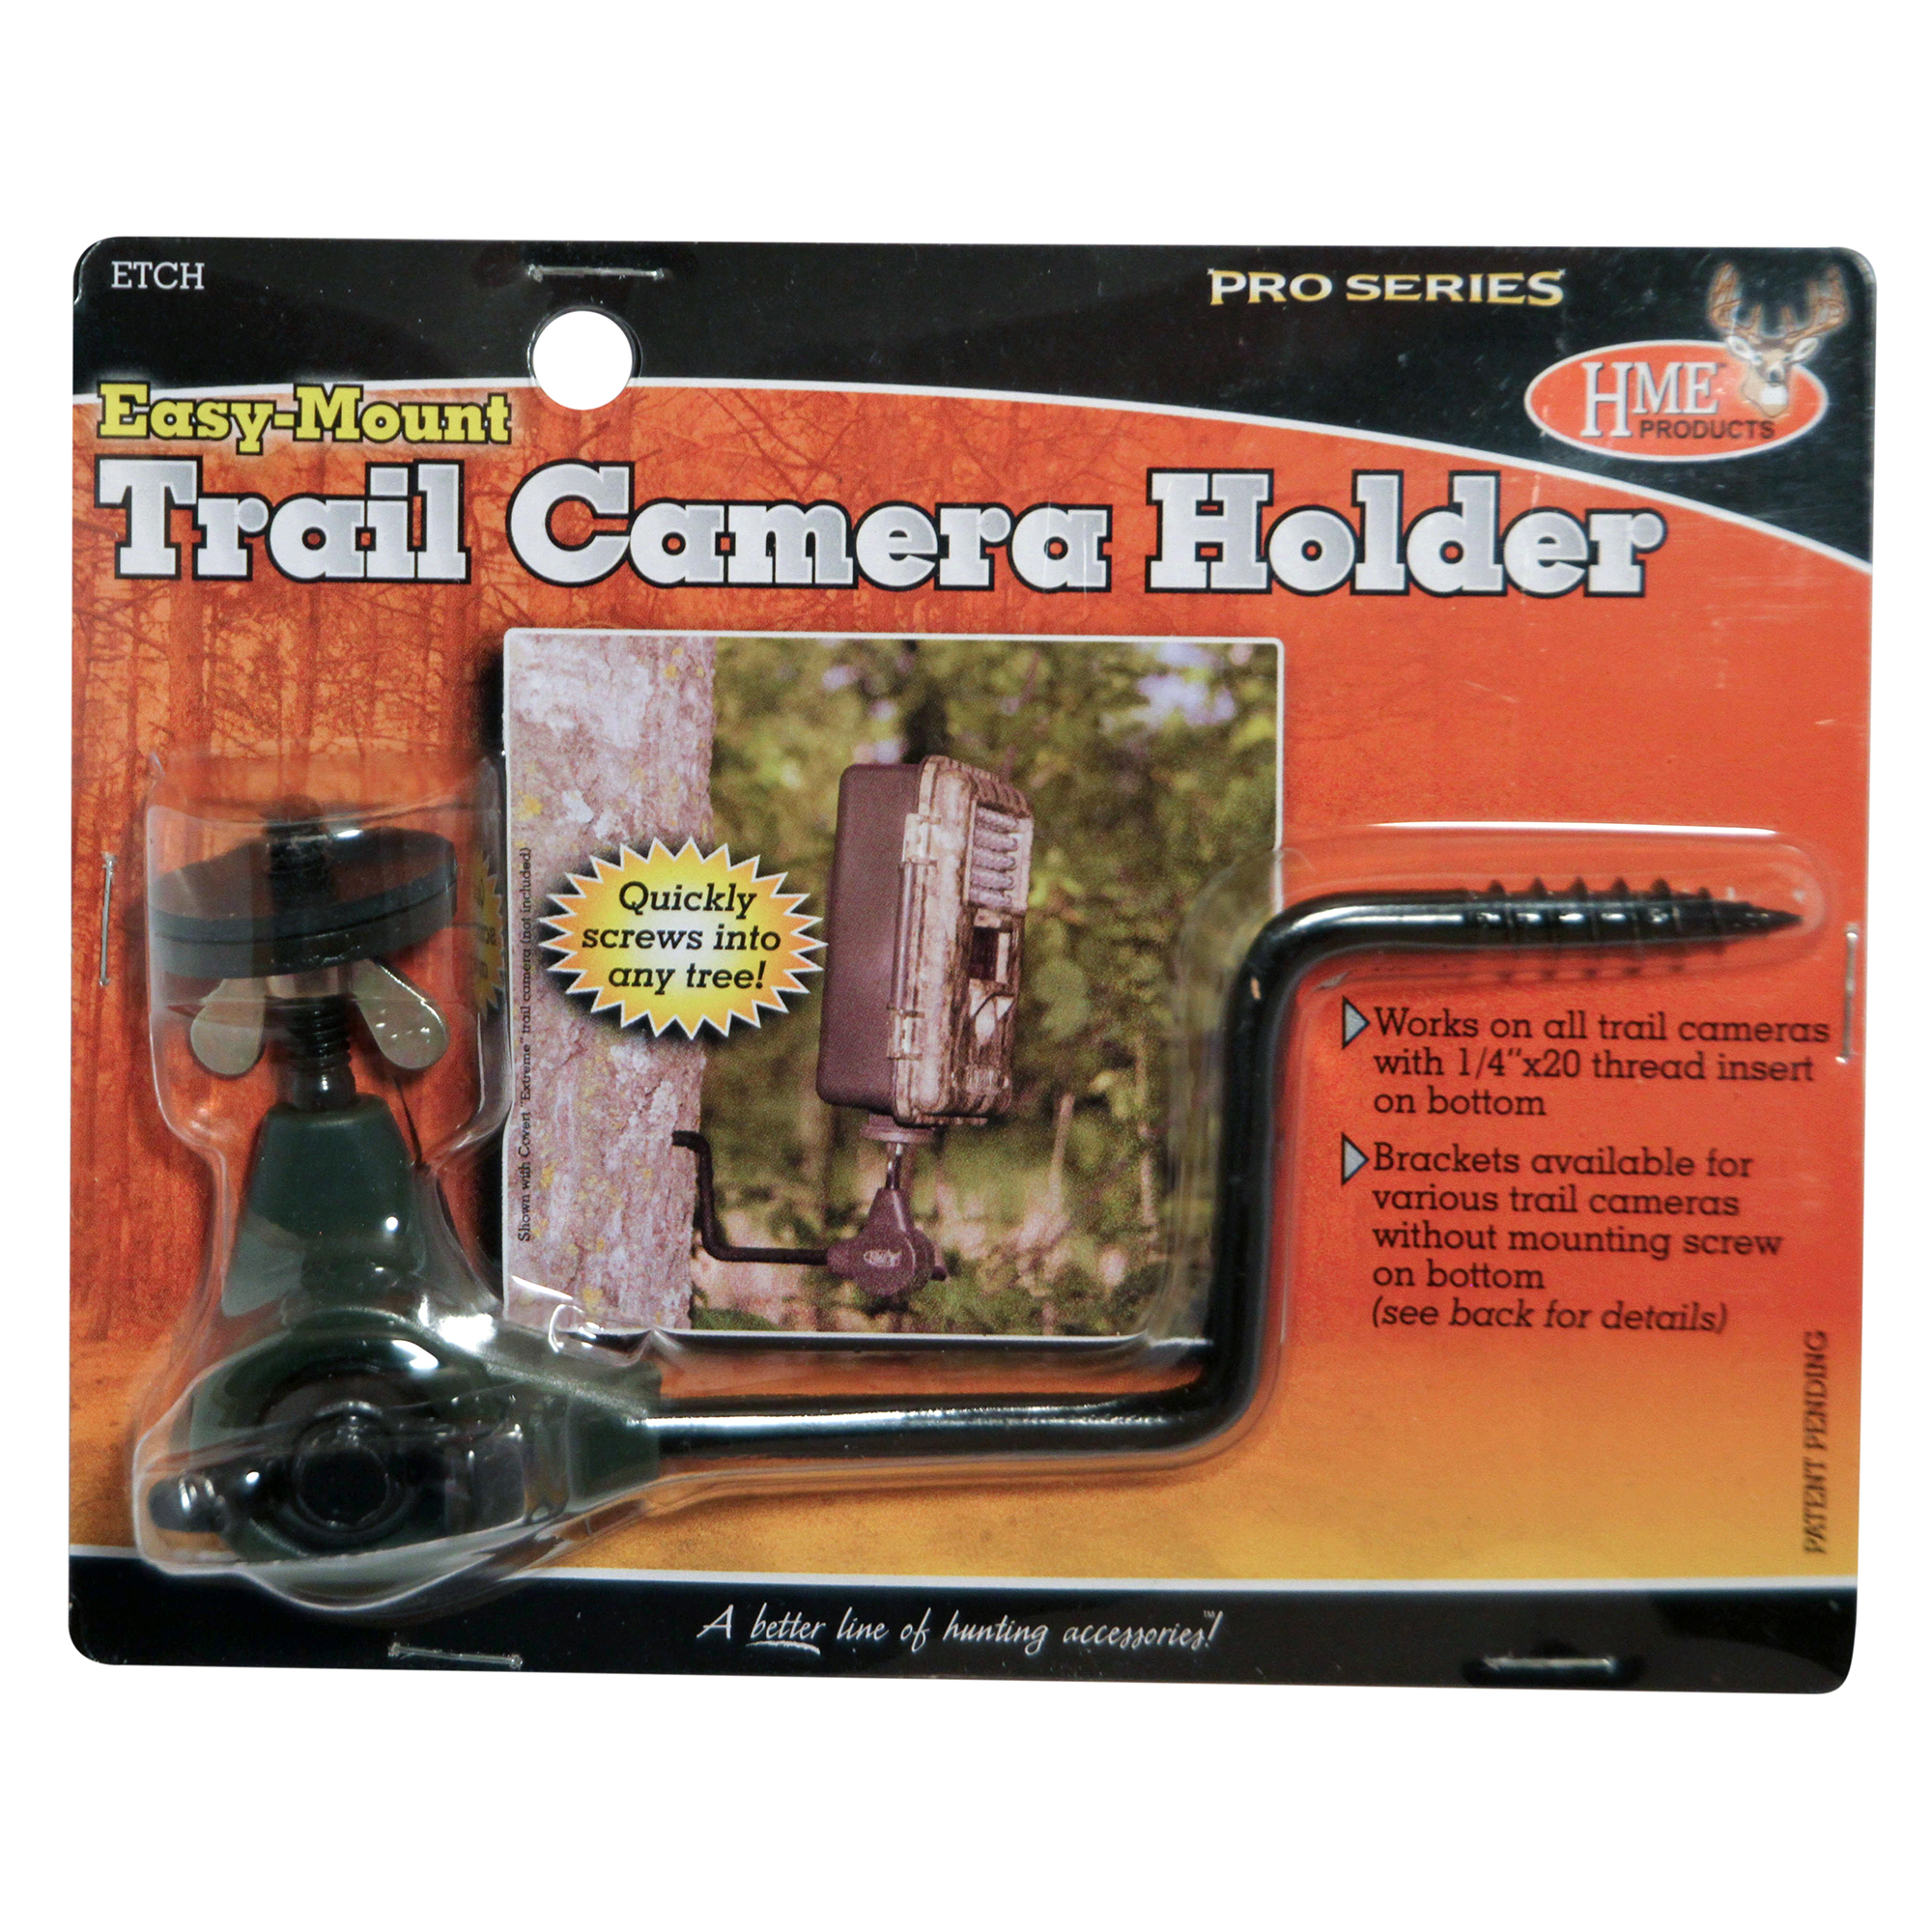 HME Economy Trail Camera Holder thumbnail